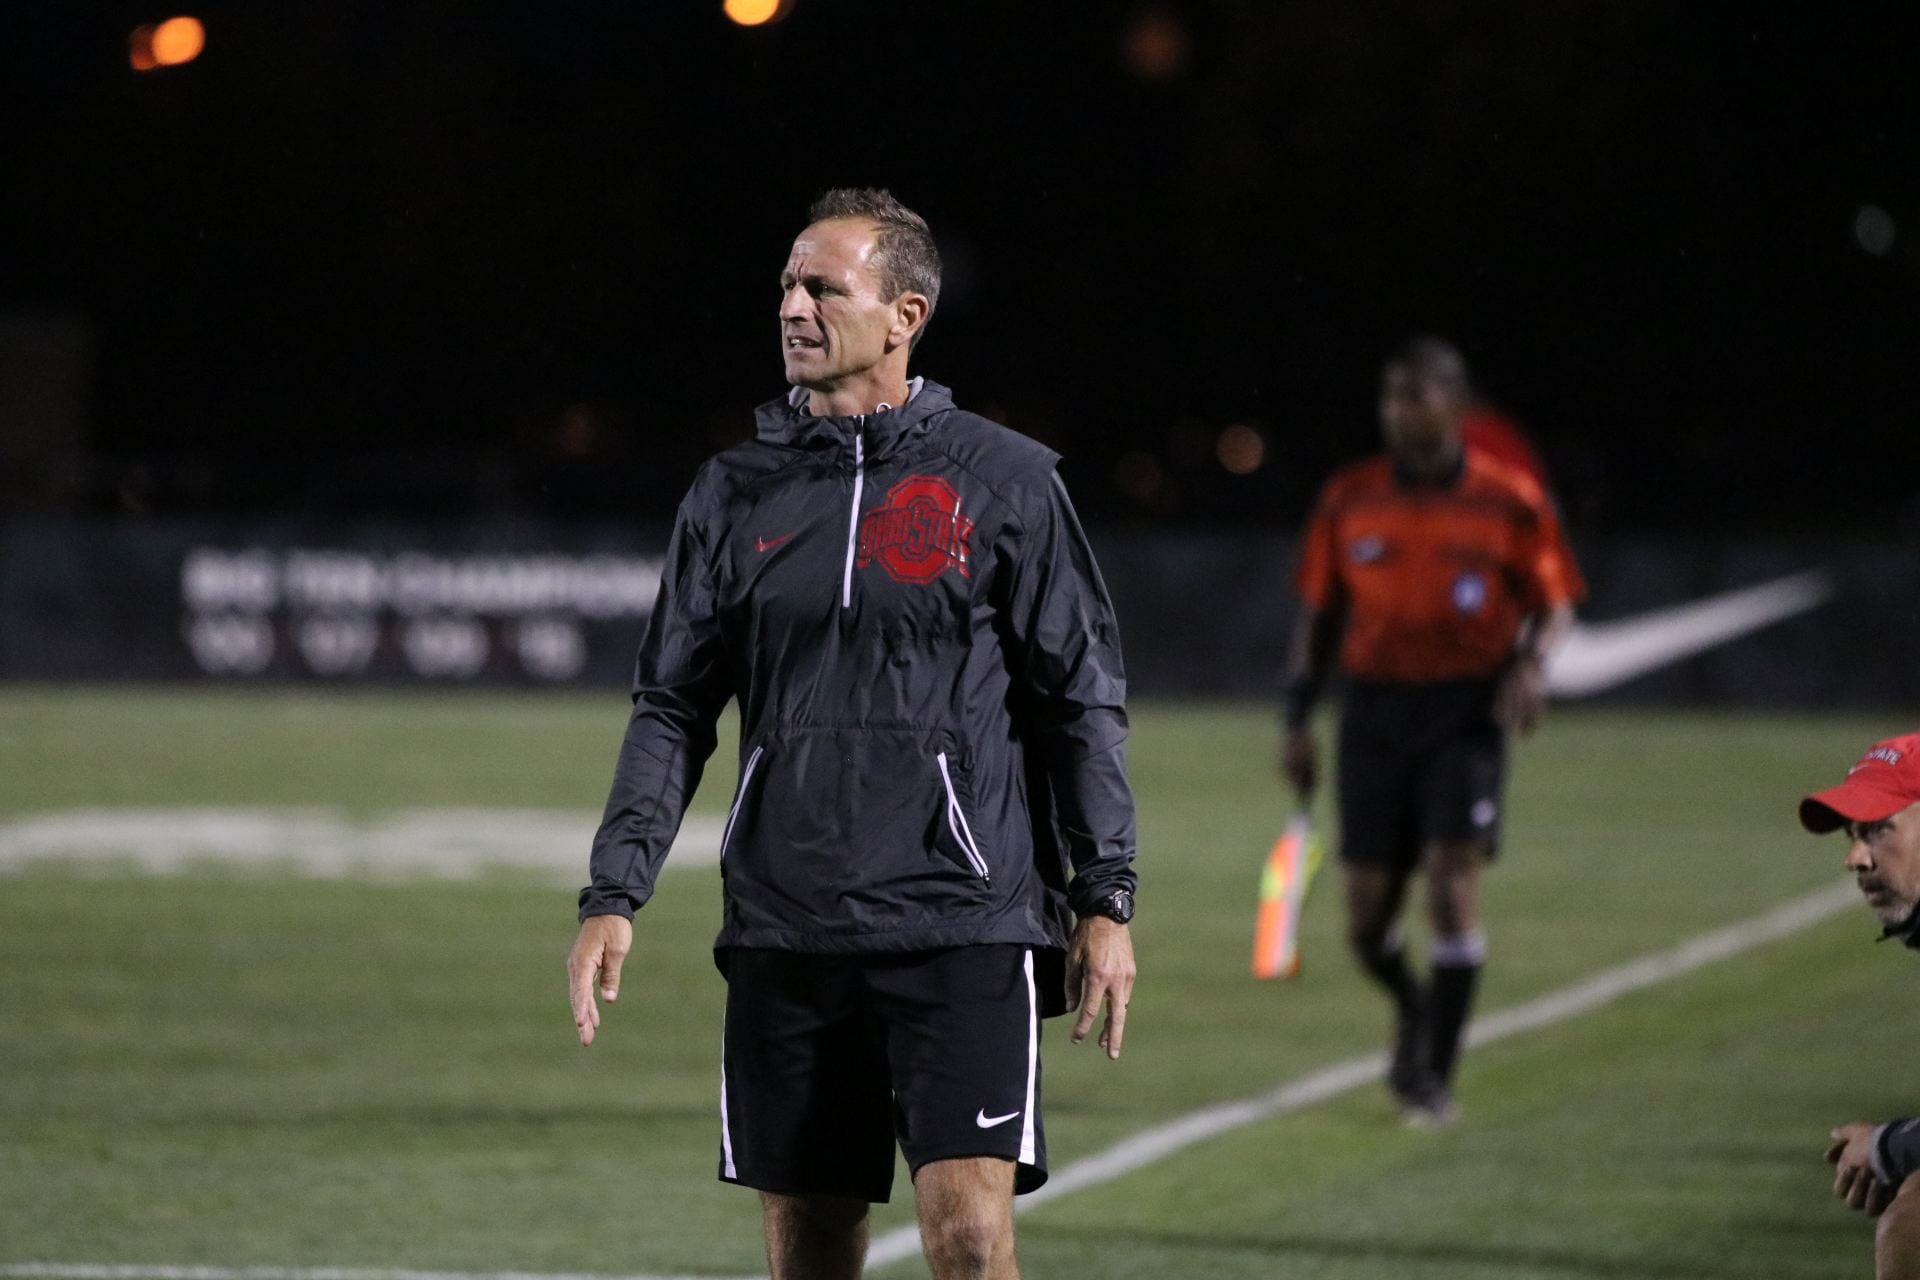 Men's Soccer: Ohio State hosts No. 2 Indiana in home finale